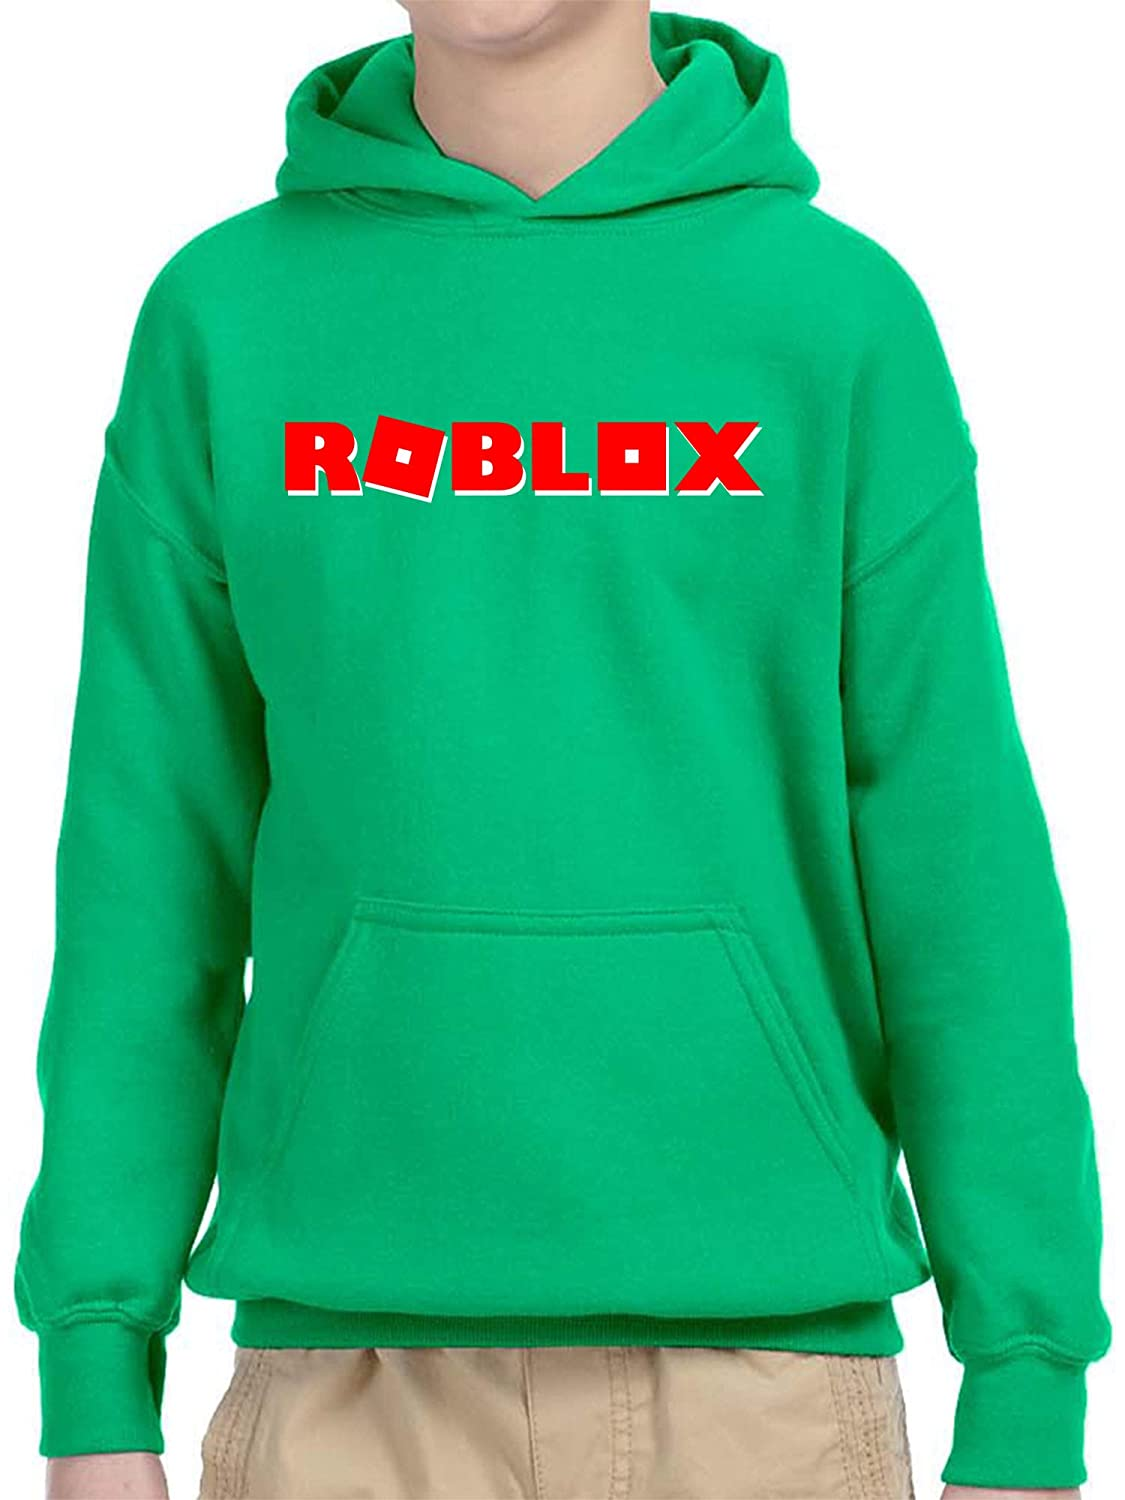 New Way 922 - Youth Hoodie Roblox Logo Game Filled Unisex Pullover Sweatshirt